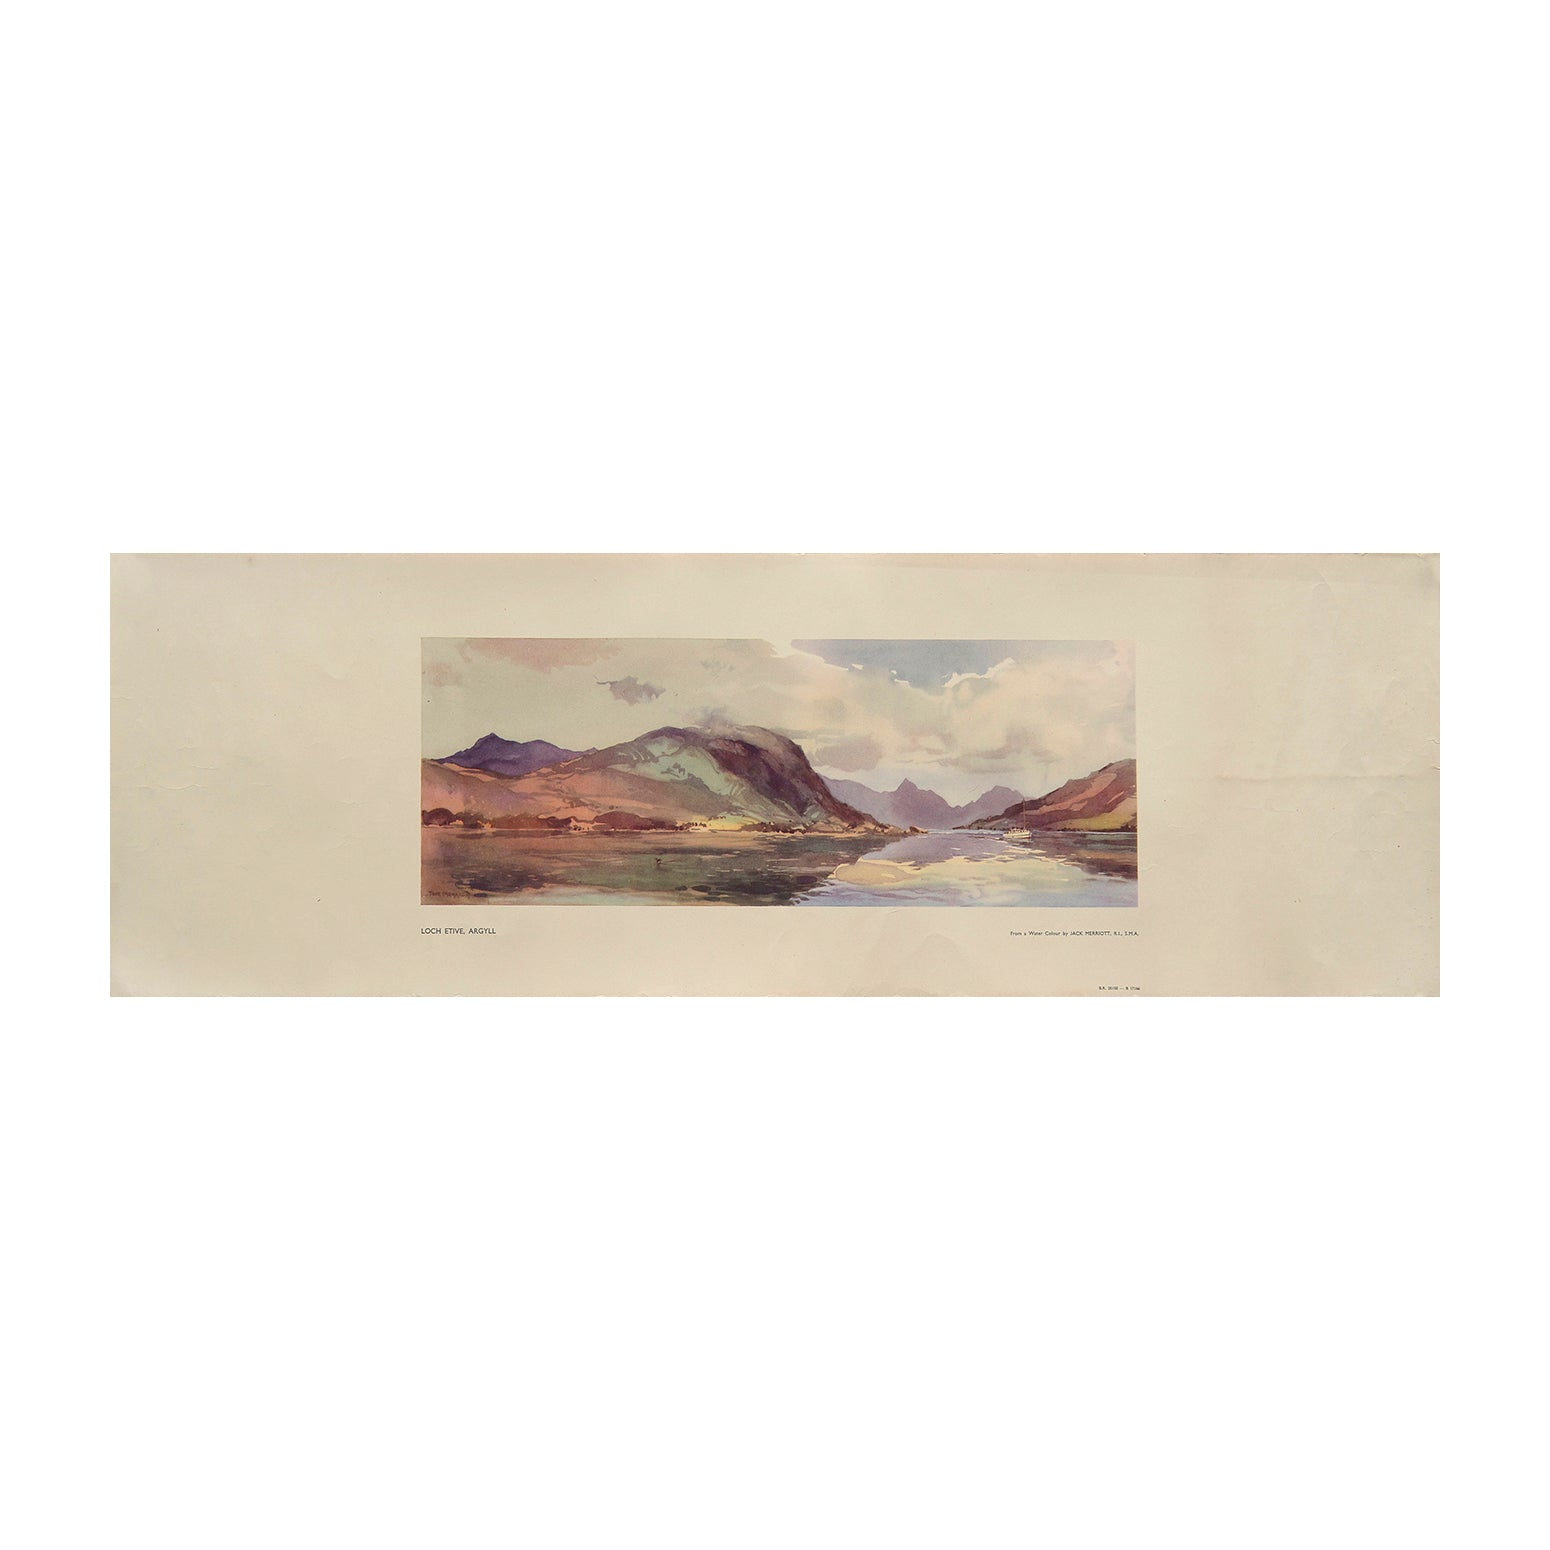 Loch Etive (railway carriage print)